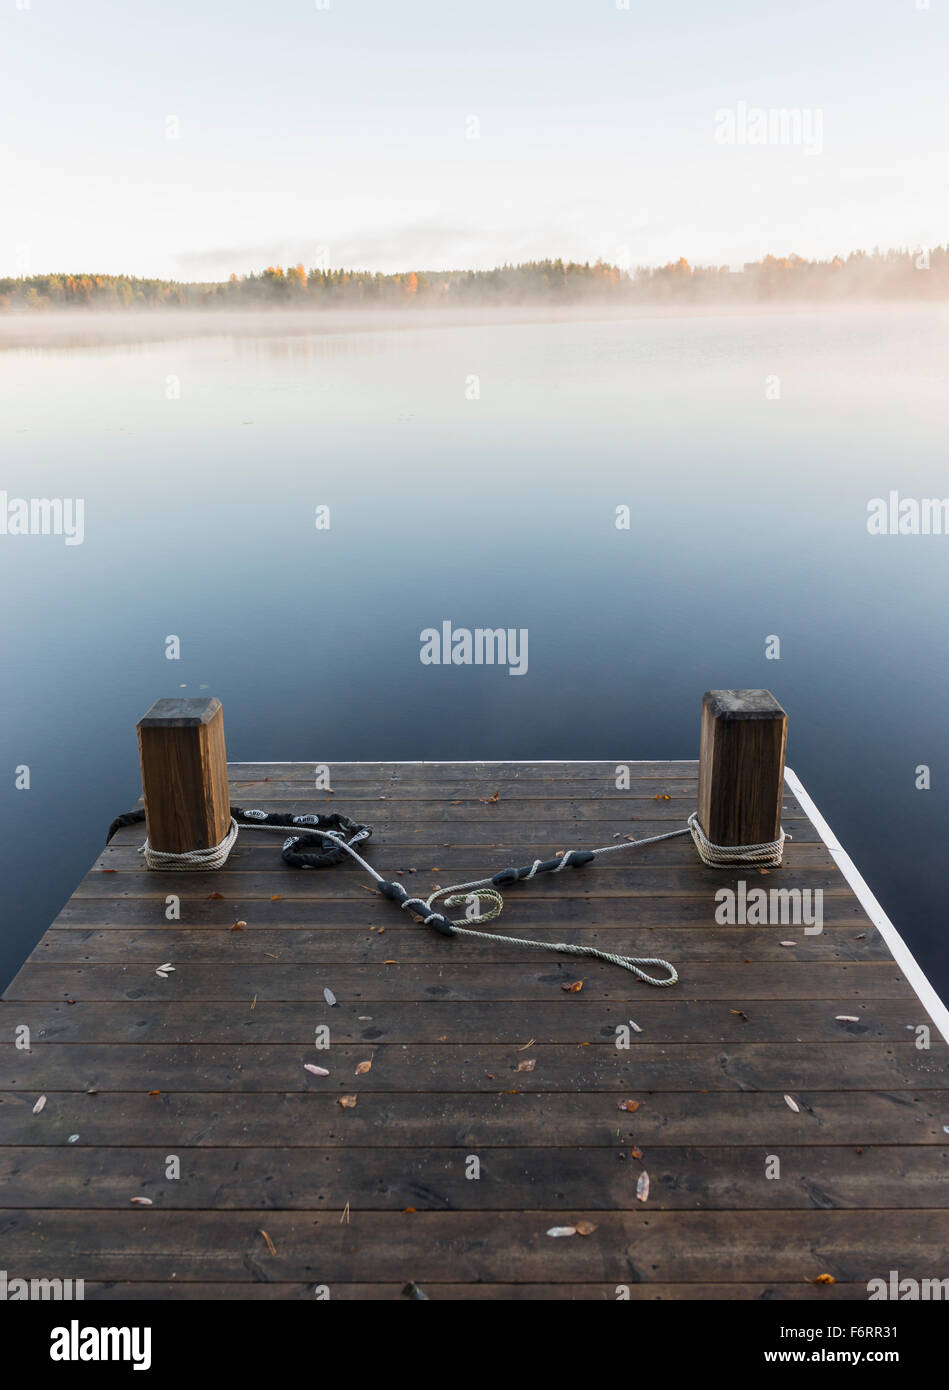 Jetty and misty lake - Stock Image